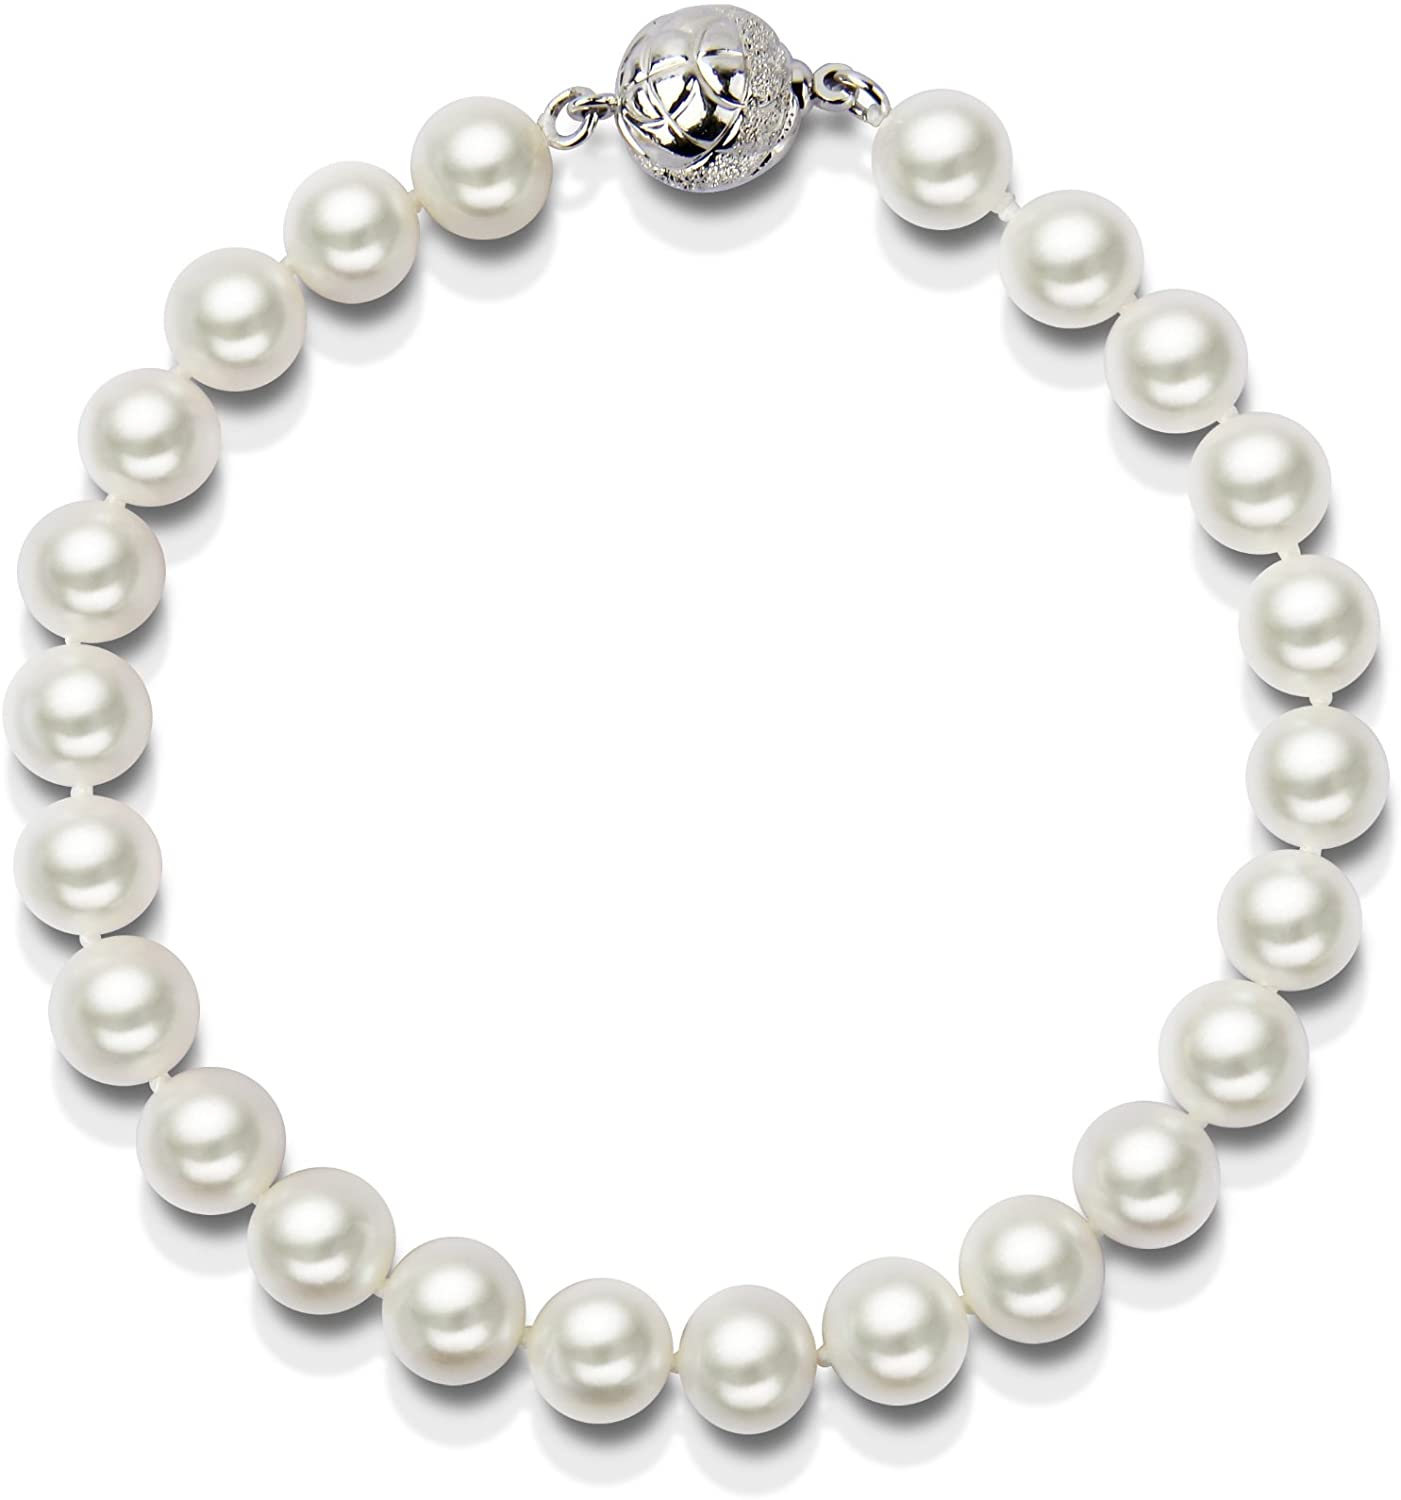 Single Strand AAA White Freshwater Cultured Pearl Bracelet 7.5-8.0mm